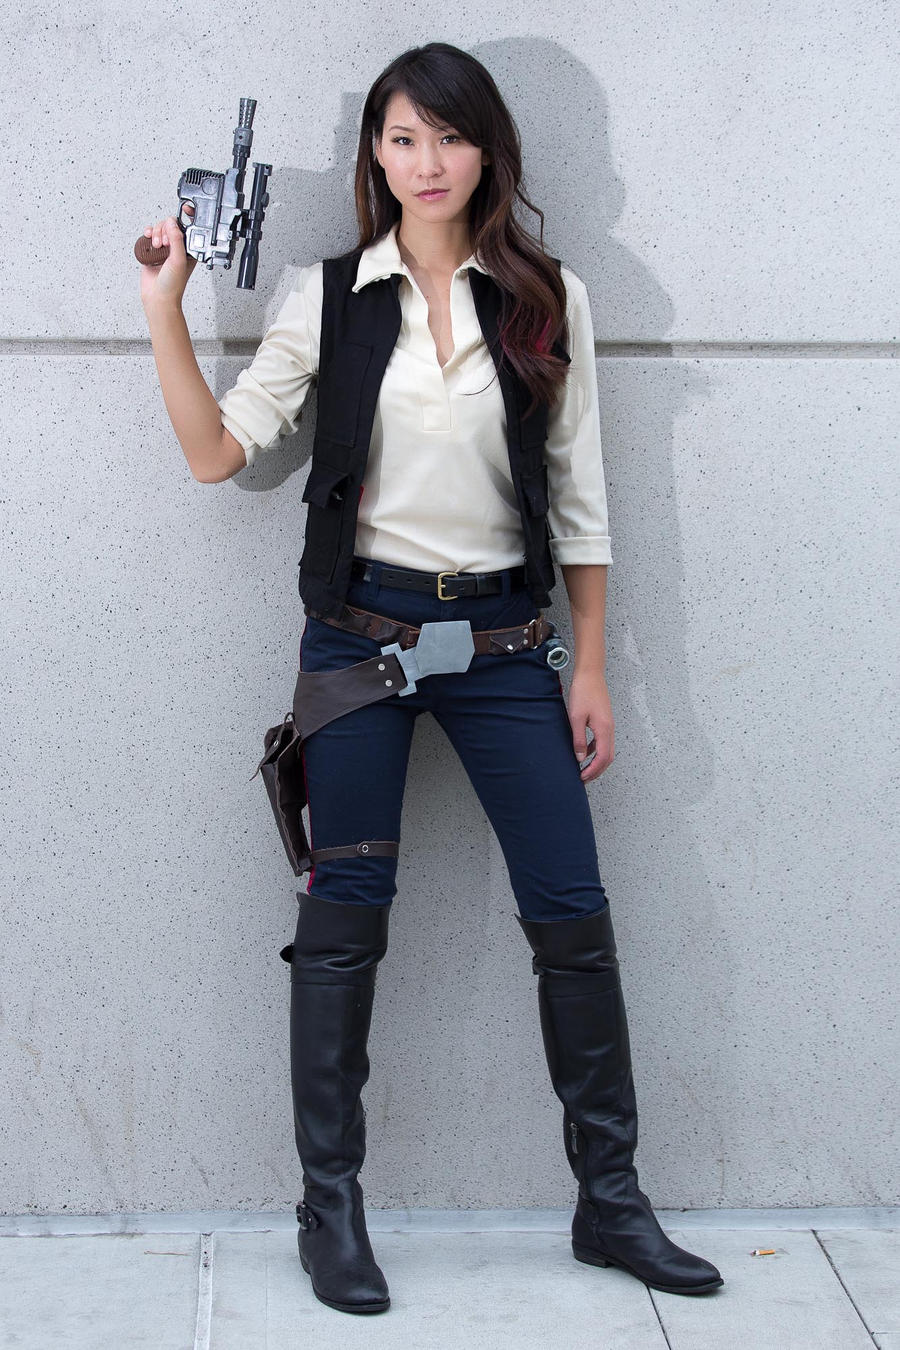 Fabuleux Han Solo Always Shoots First by milkchess on DeviantArt OW99